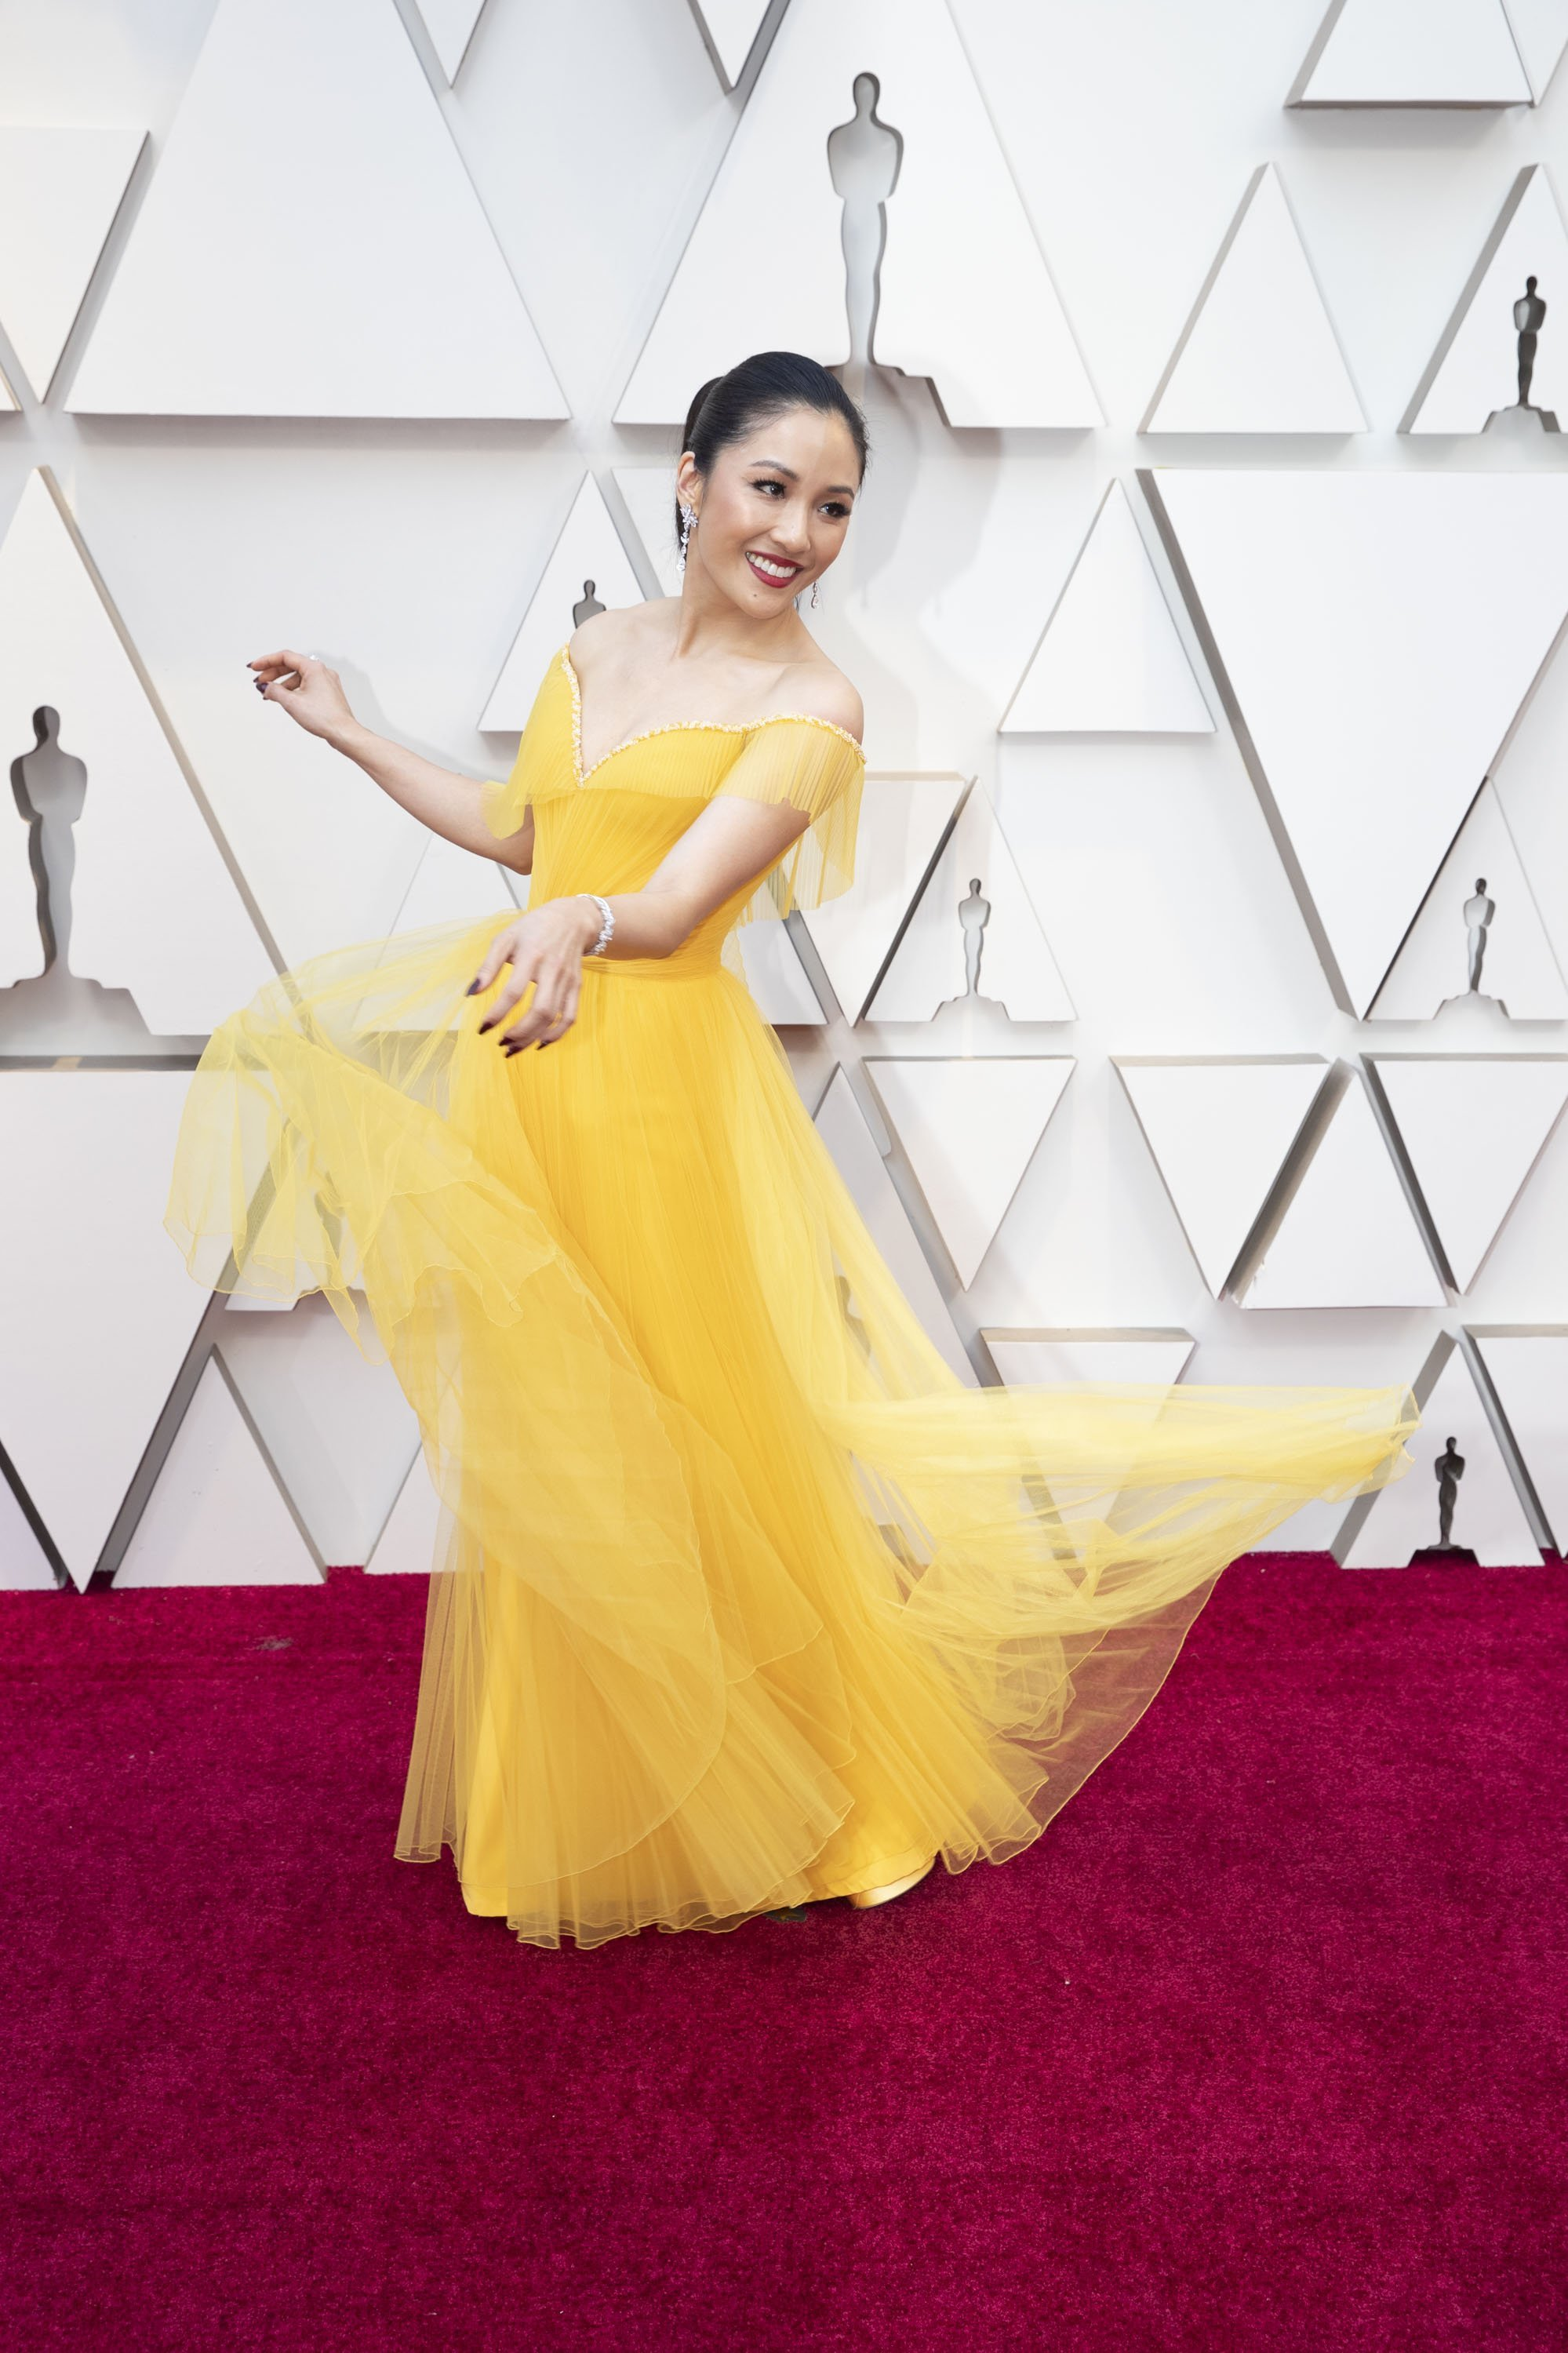 Constance Wu: Red Carpet from the The 91st Oscar broadcast on Sunday, Feb. 24, 2019, at the Dolby Theatre.